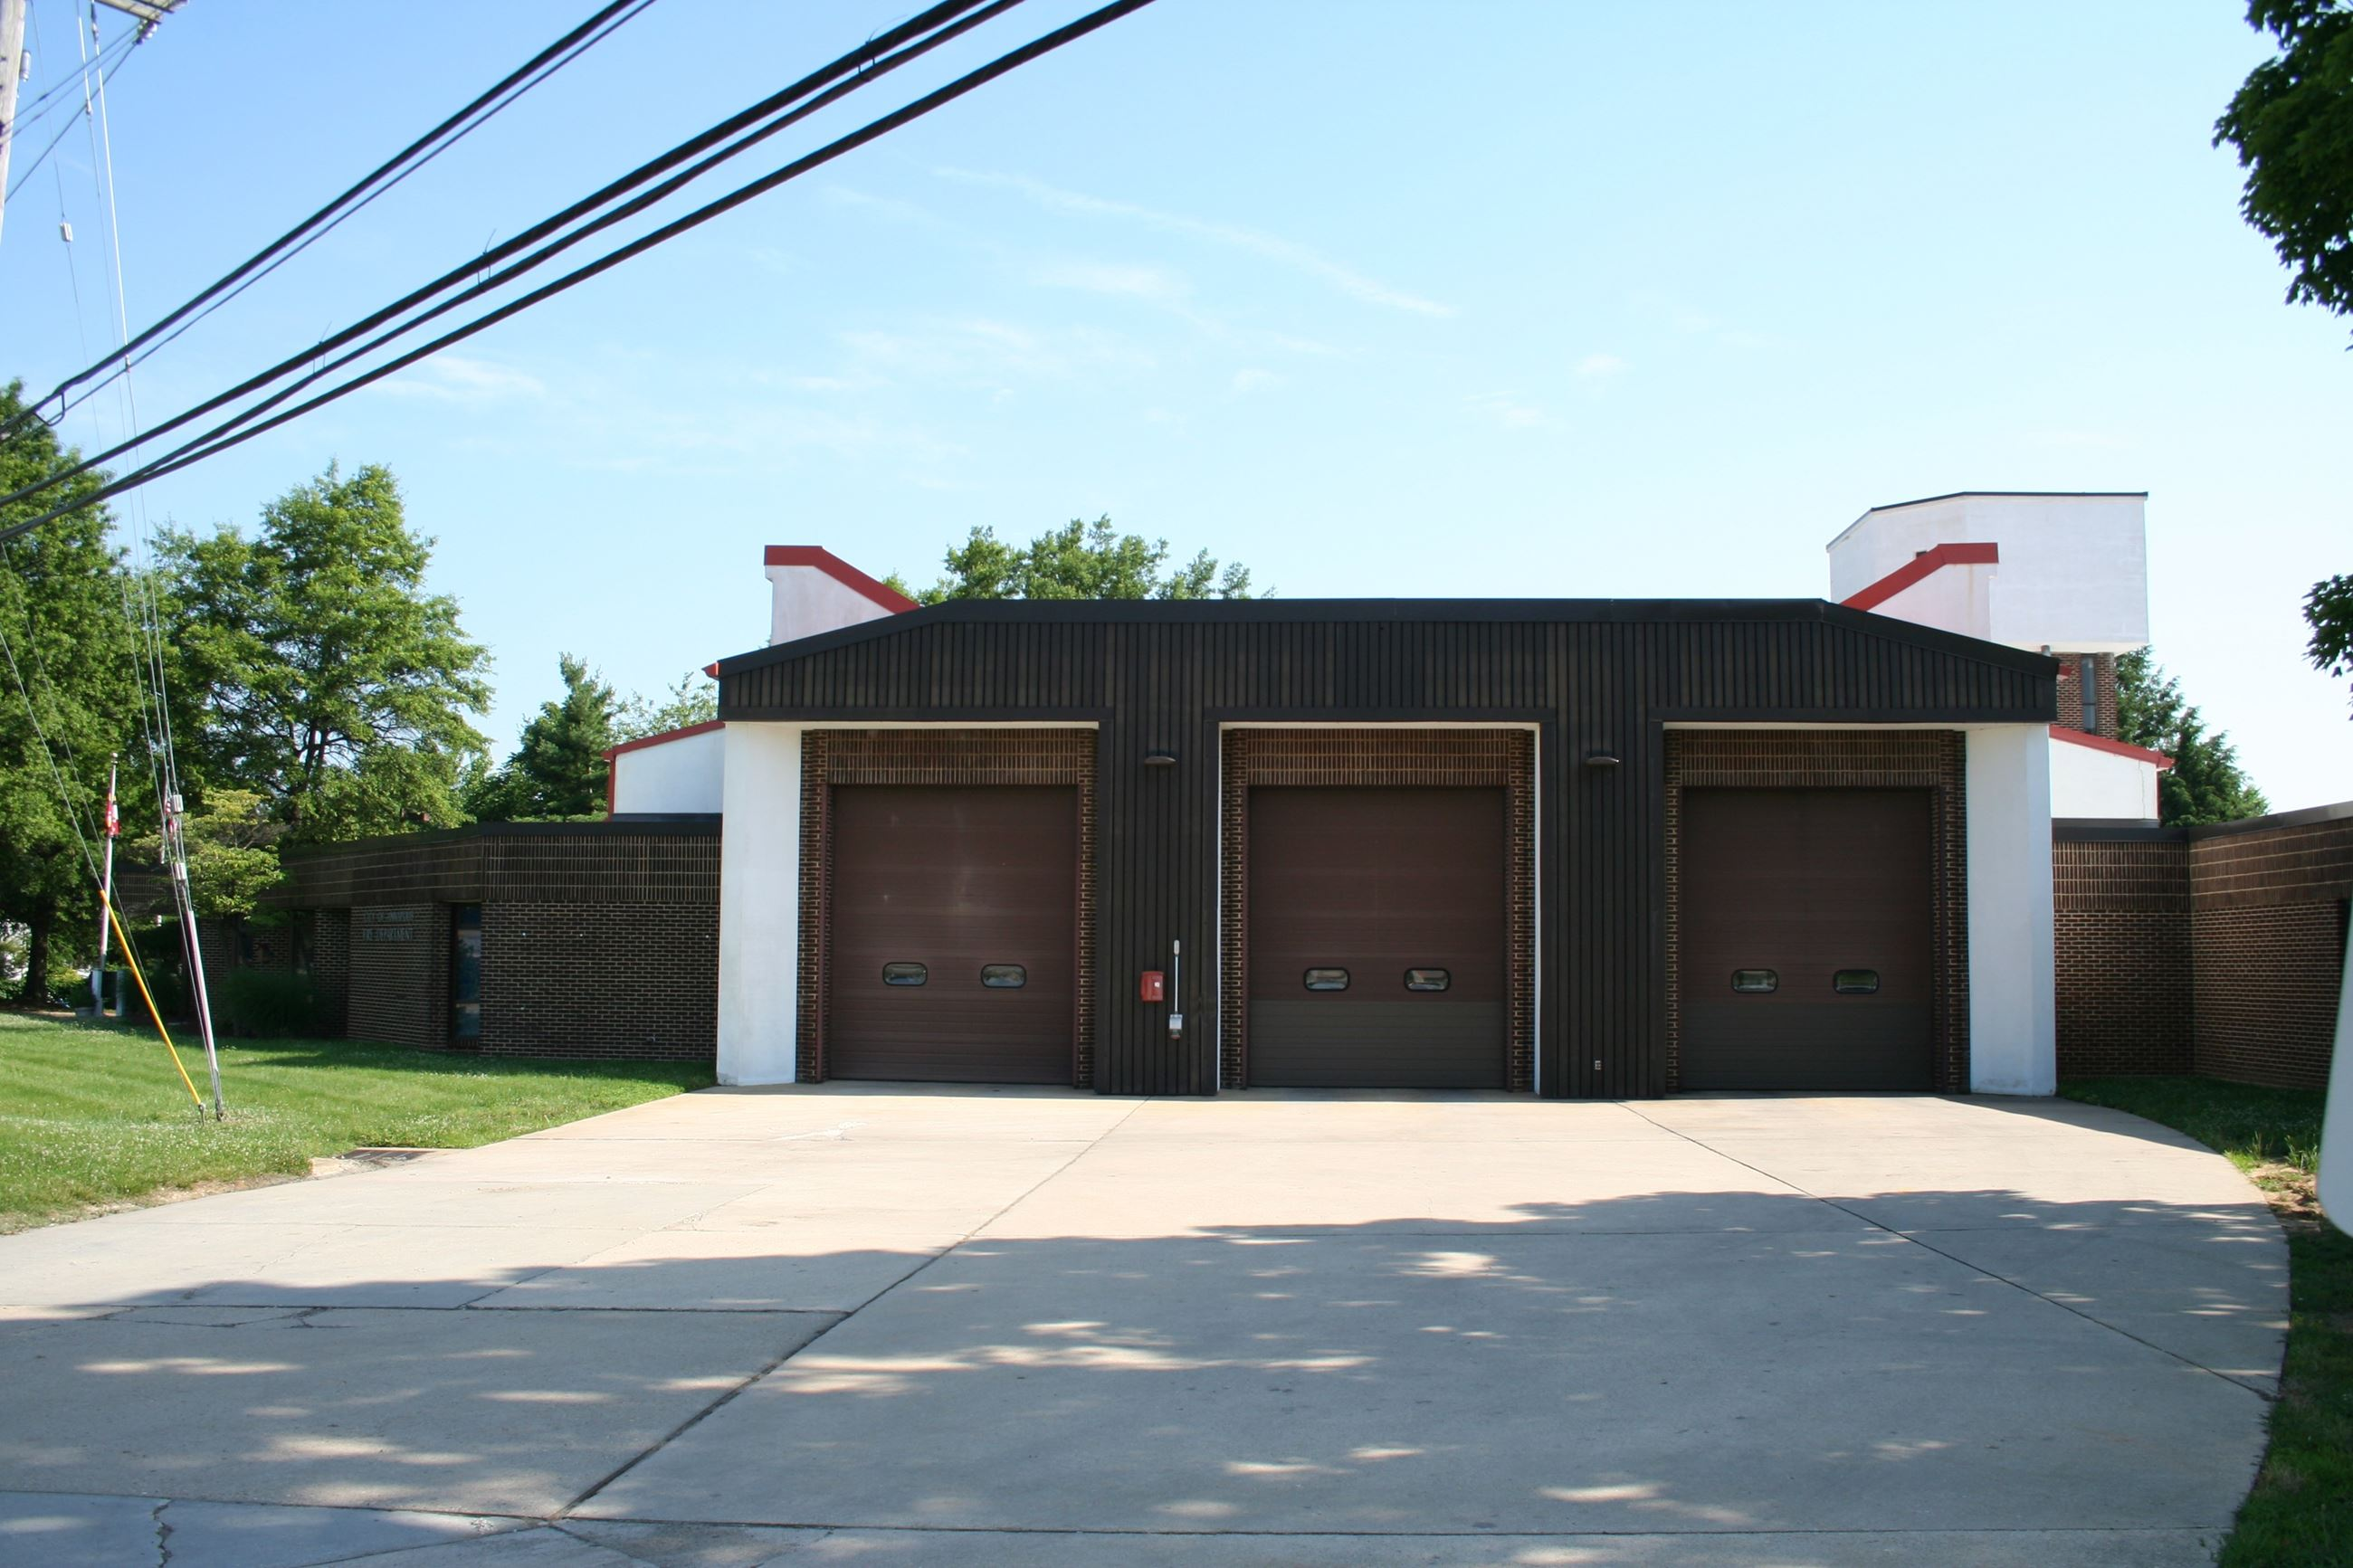 A fire station with 3 large garage doors.